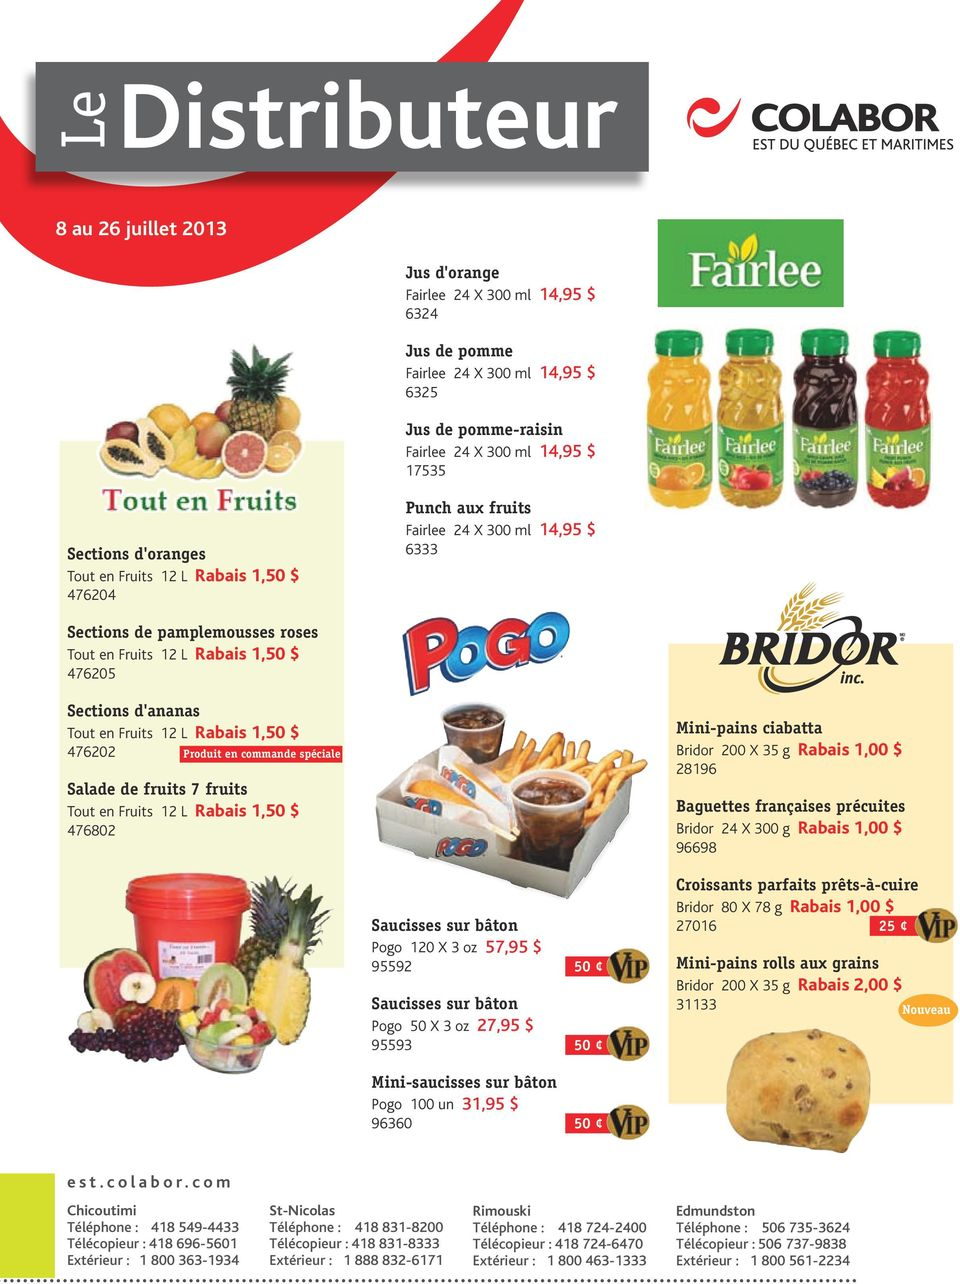 Fruits 12 L Rabais 1,50 $ 476202 Salade de fruits 7 fruits Tout en Fruits 12 L Rabais 1,50 $ 476802 Mini-pains ciabatta Bridor 200 X 35 g Rabais 1,00 $ 28196 K : 100% R: 212 - G: 158 - B : 15